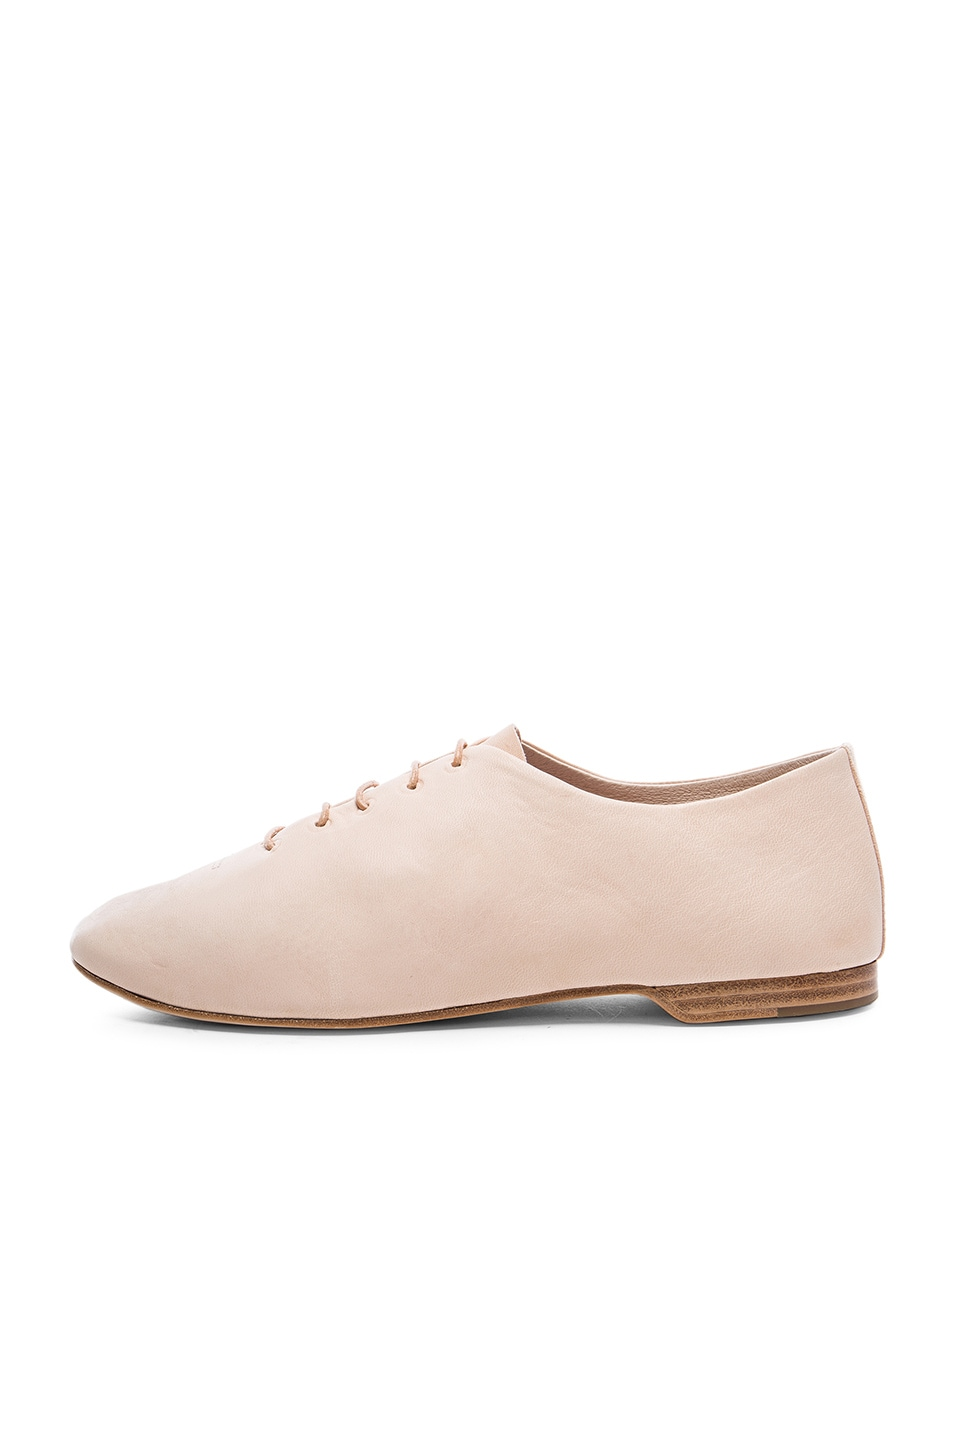 Image 5 of Hender Scheme Manual Industrial Product 13 in Natural